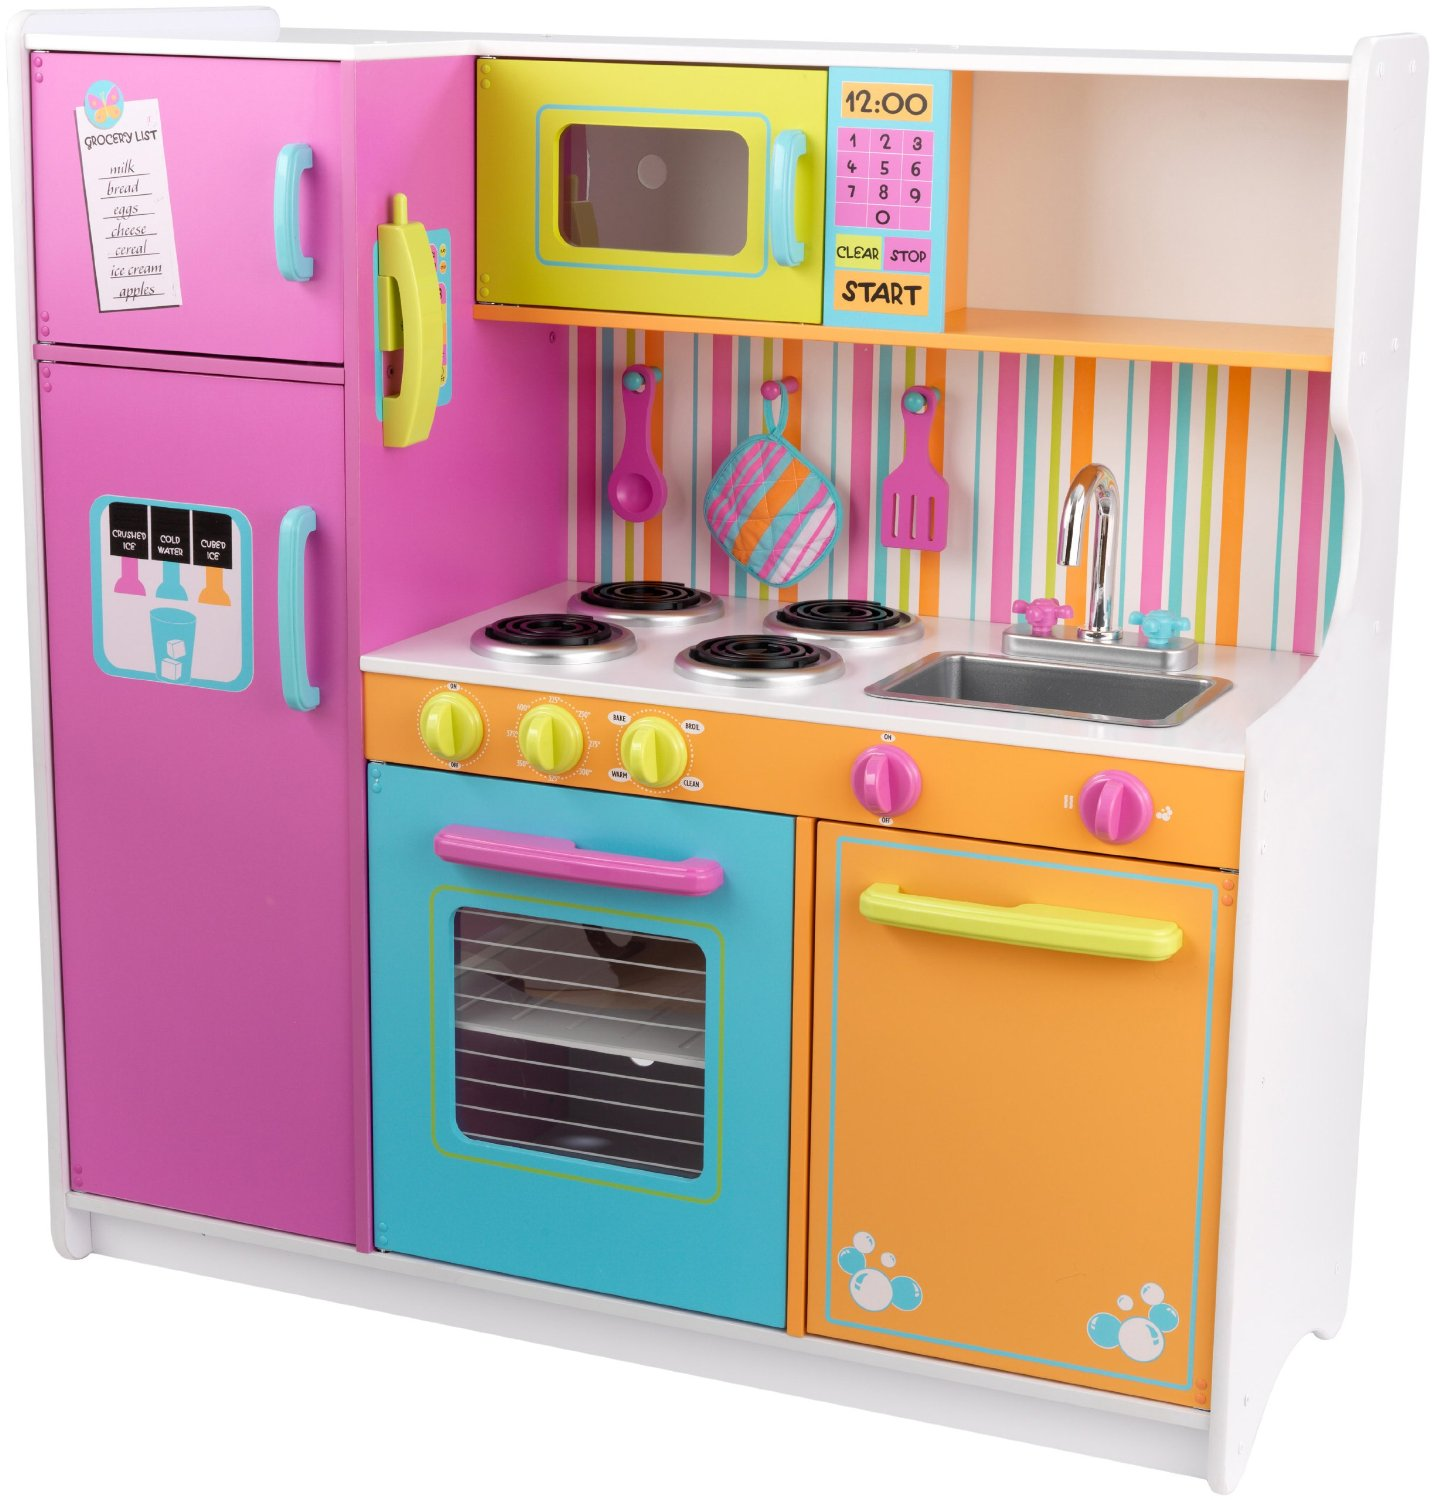 Kitchen Set Toys - Classy Baby Gear